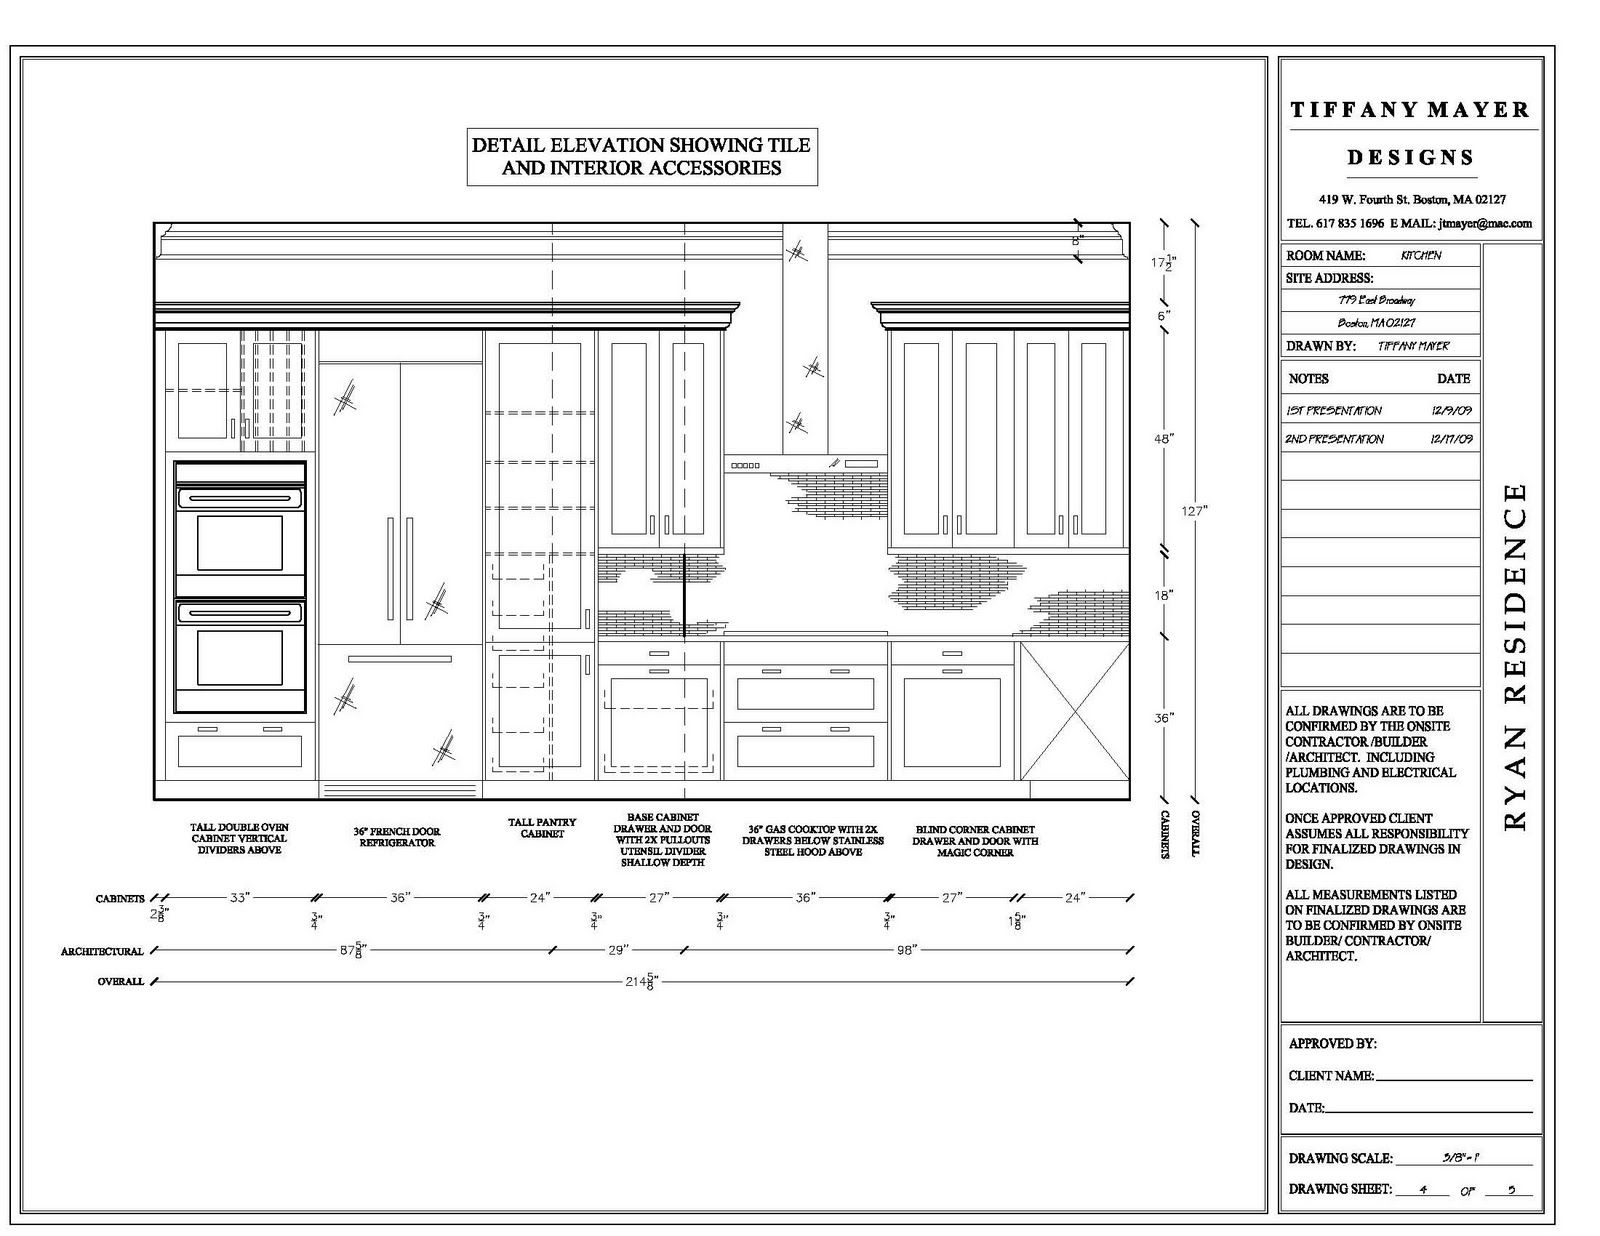 elevation drawings cabinet detail drawing size interior design